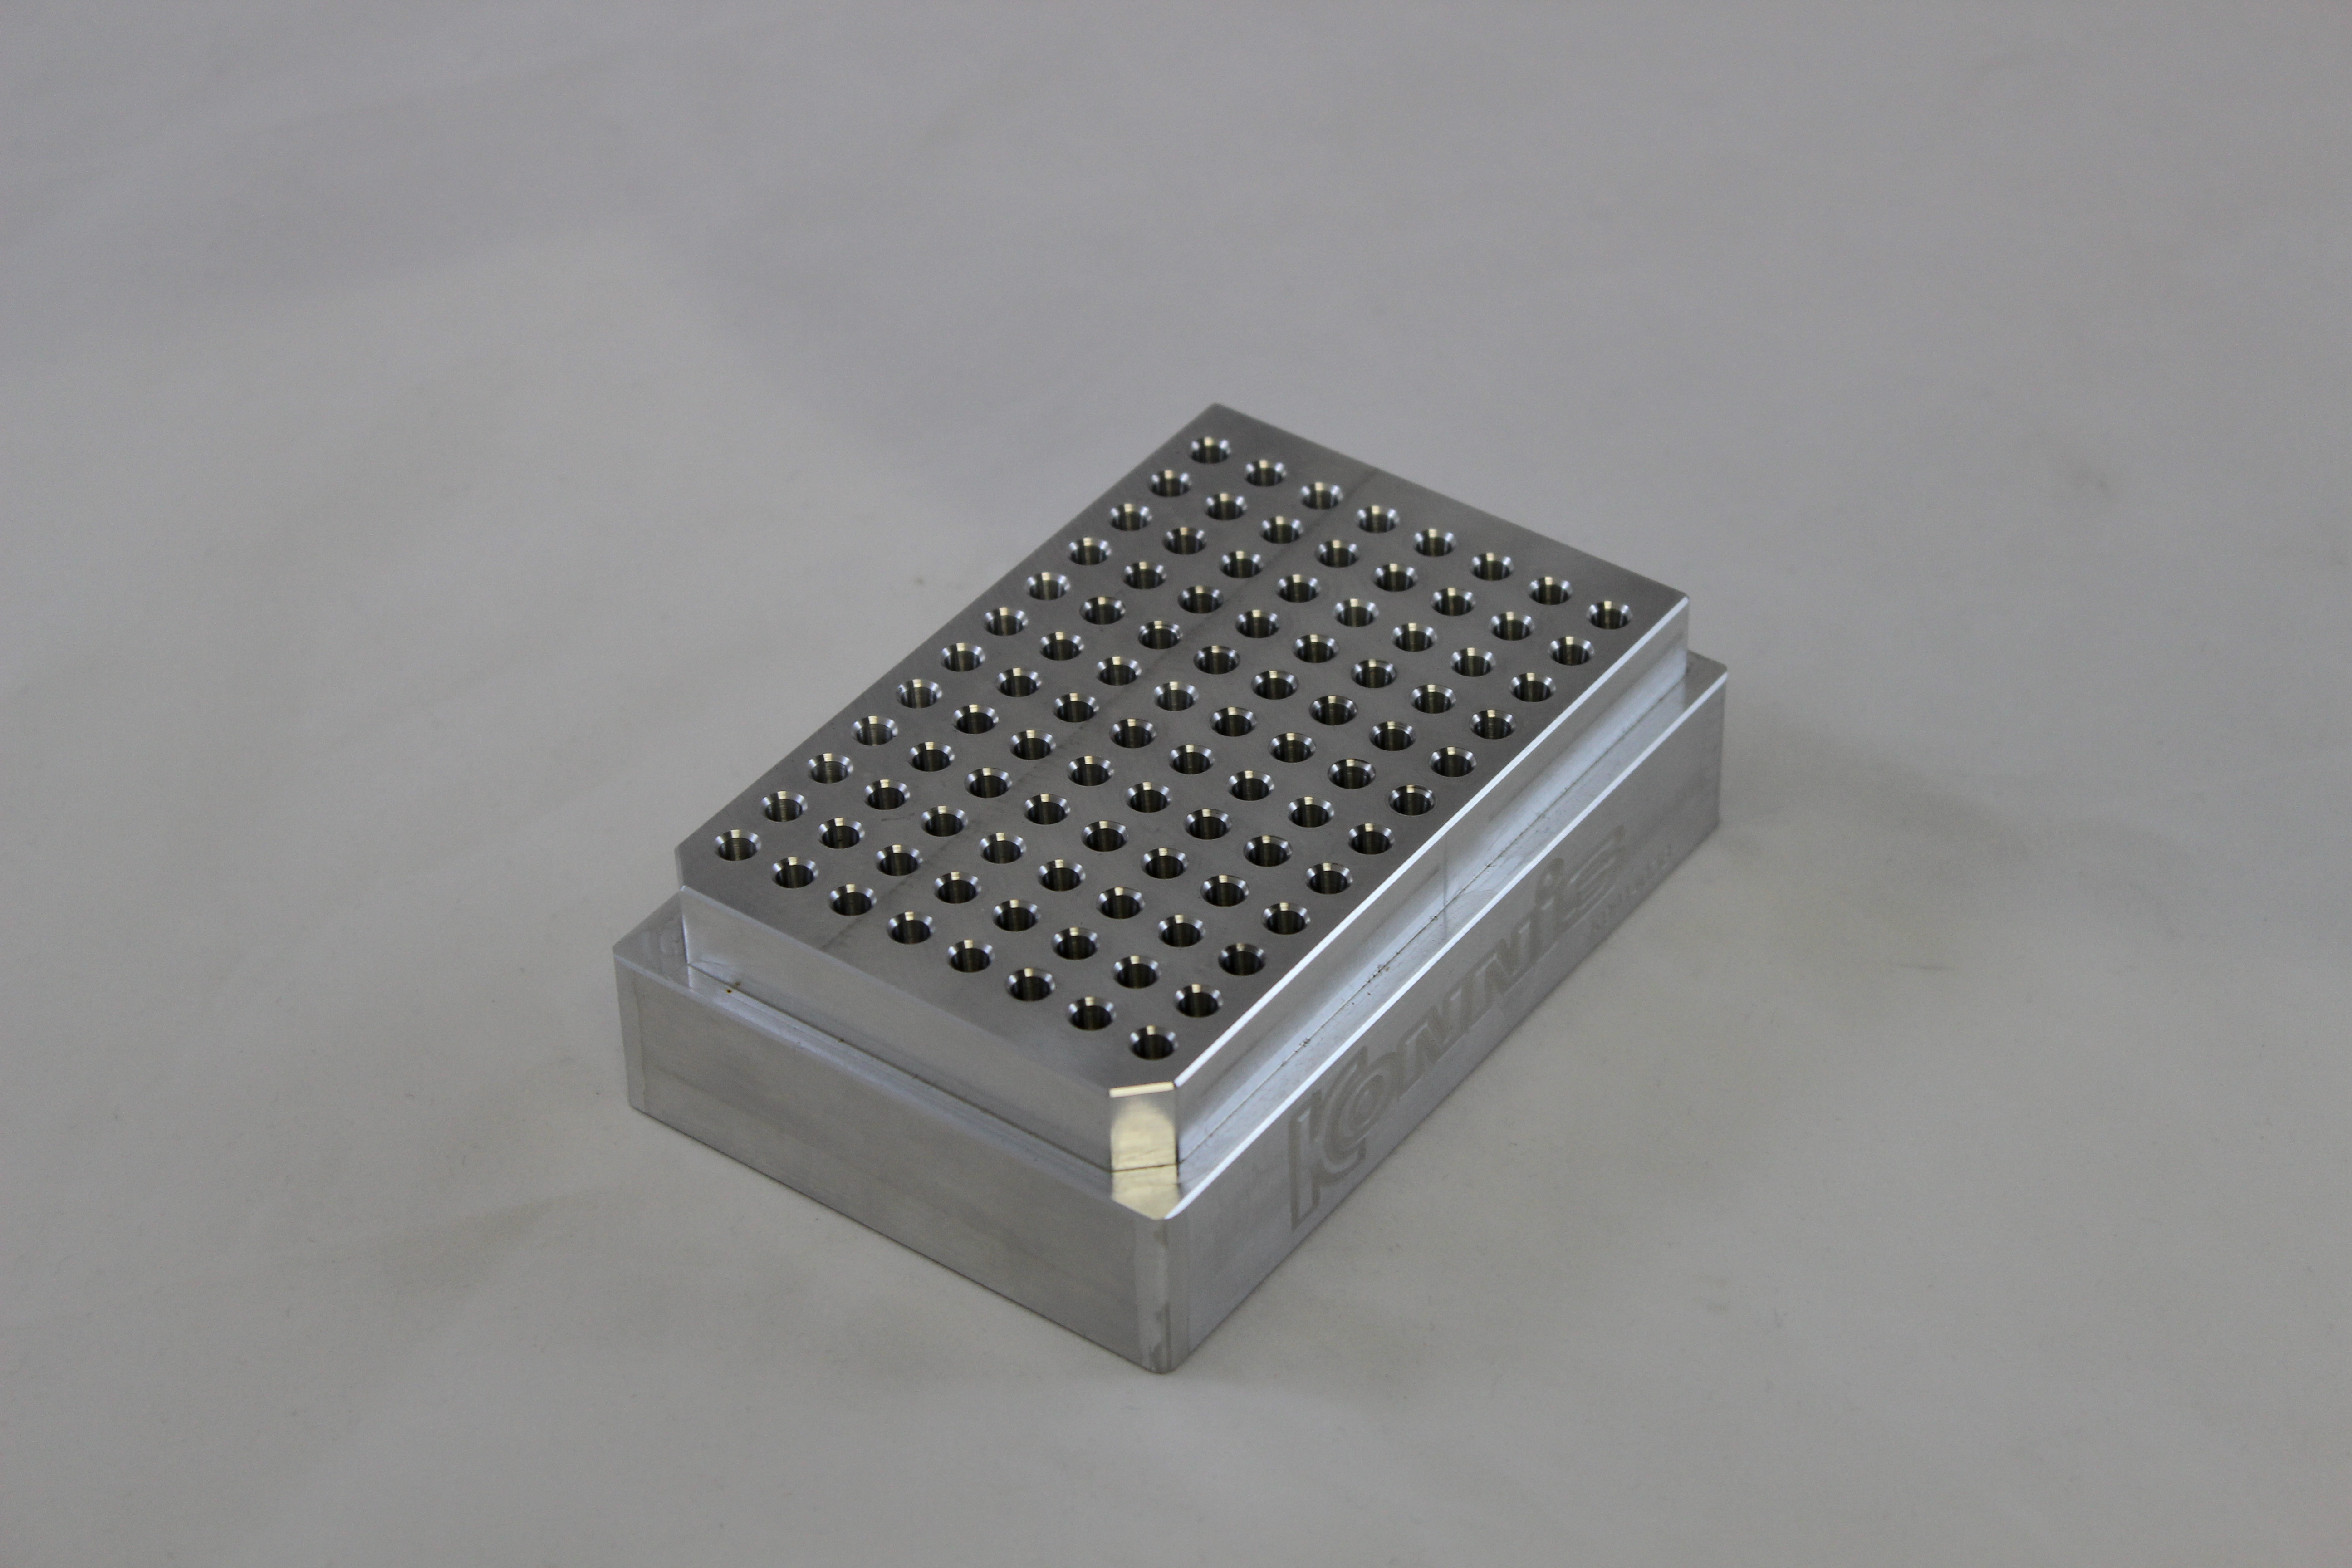 96 Well Microplate Extended Height With Temp Plate